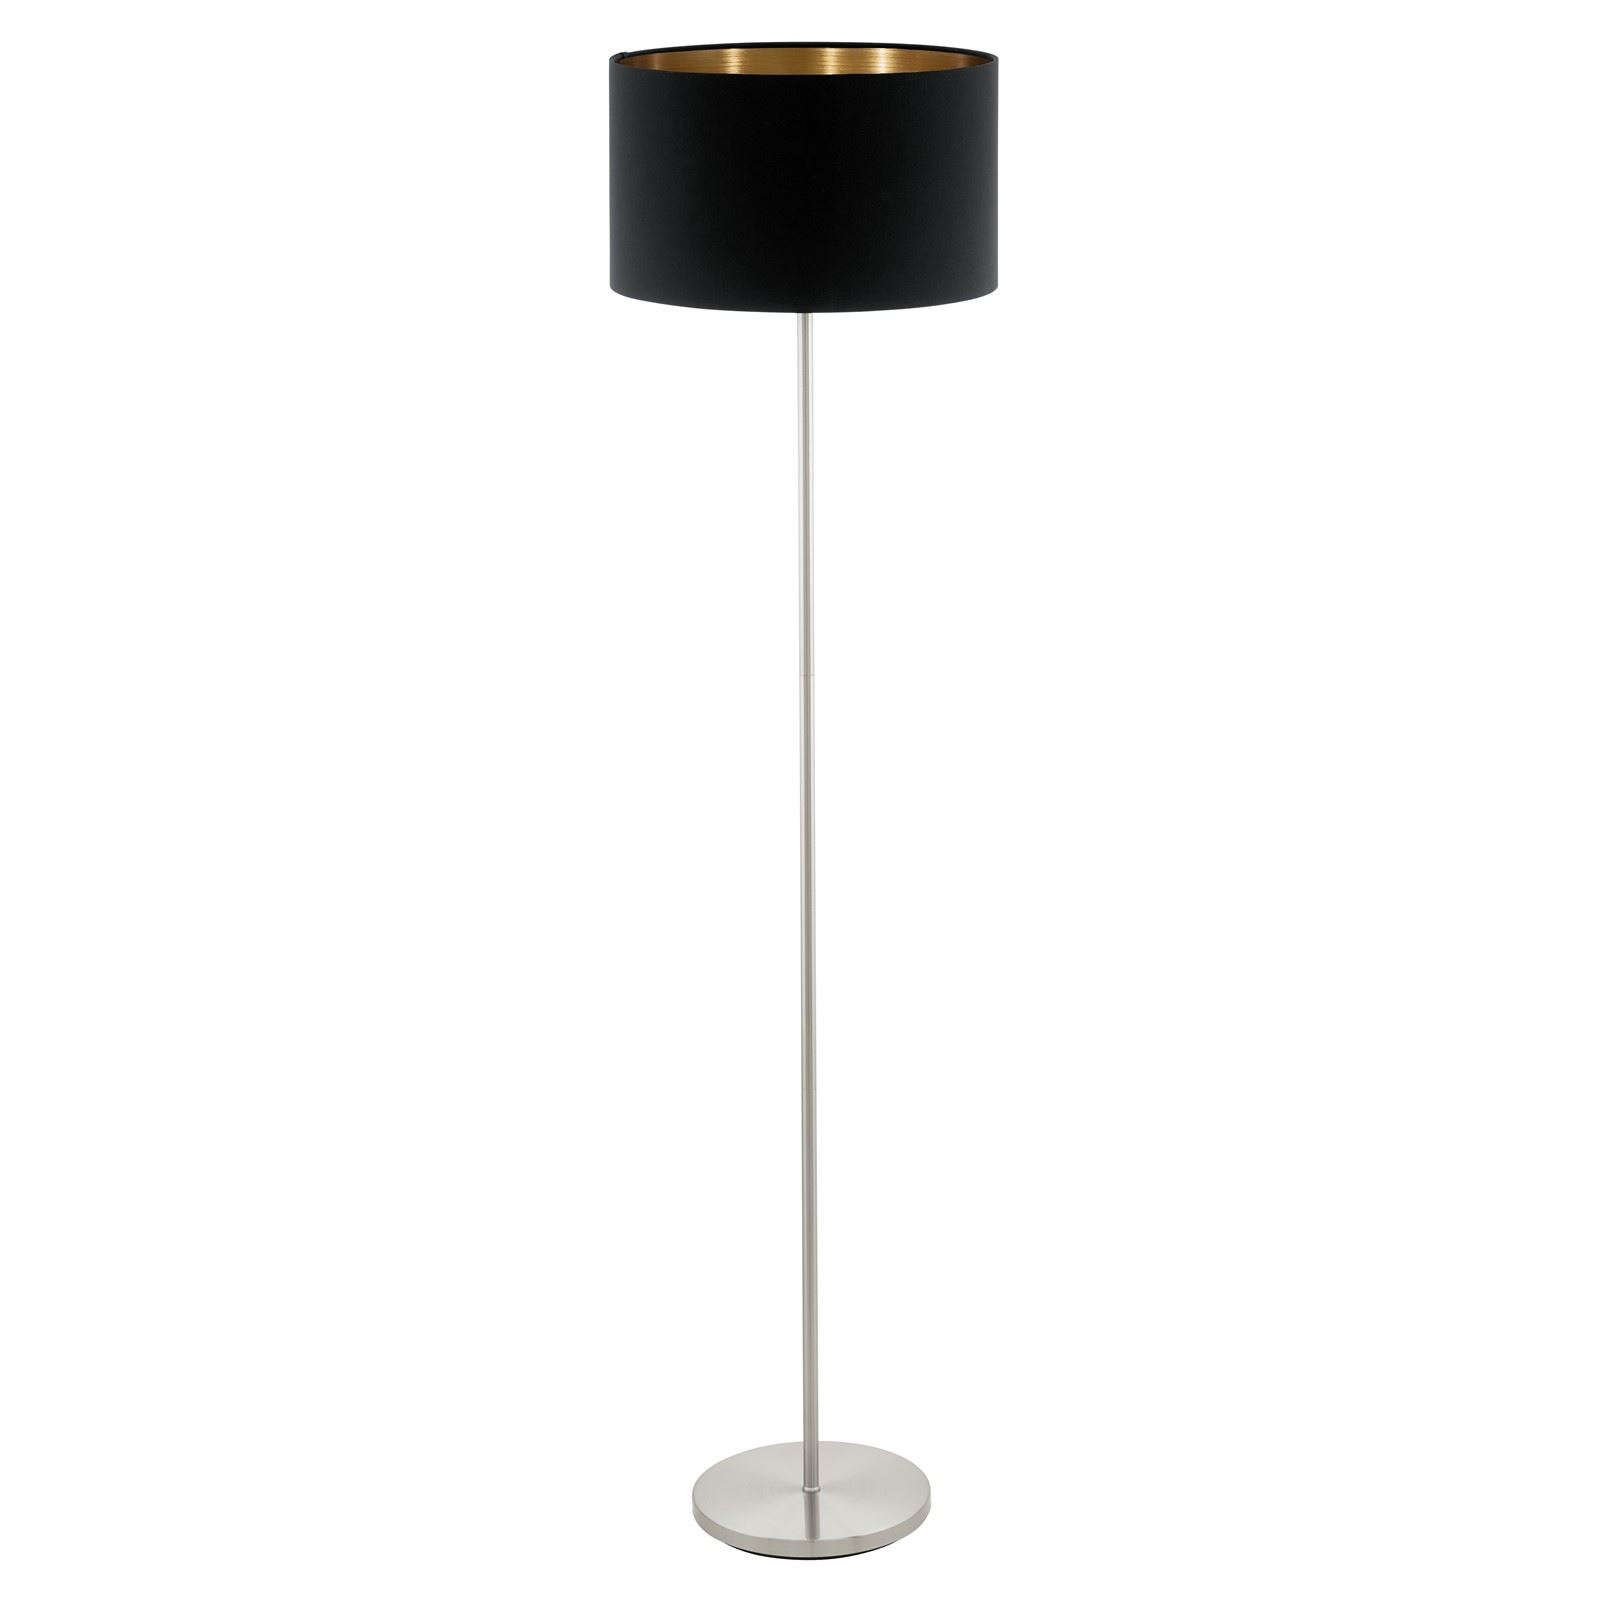 Pasteri Satin Nickel Floor Lamp With Black Copper Shade Foot-Switch